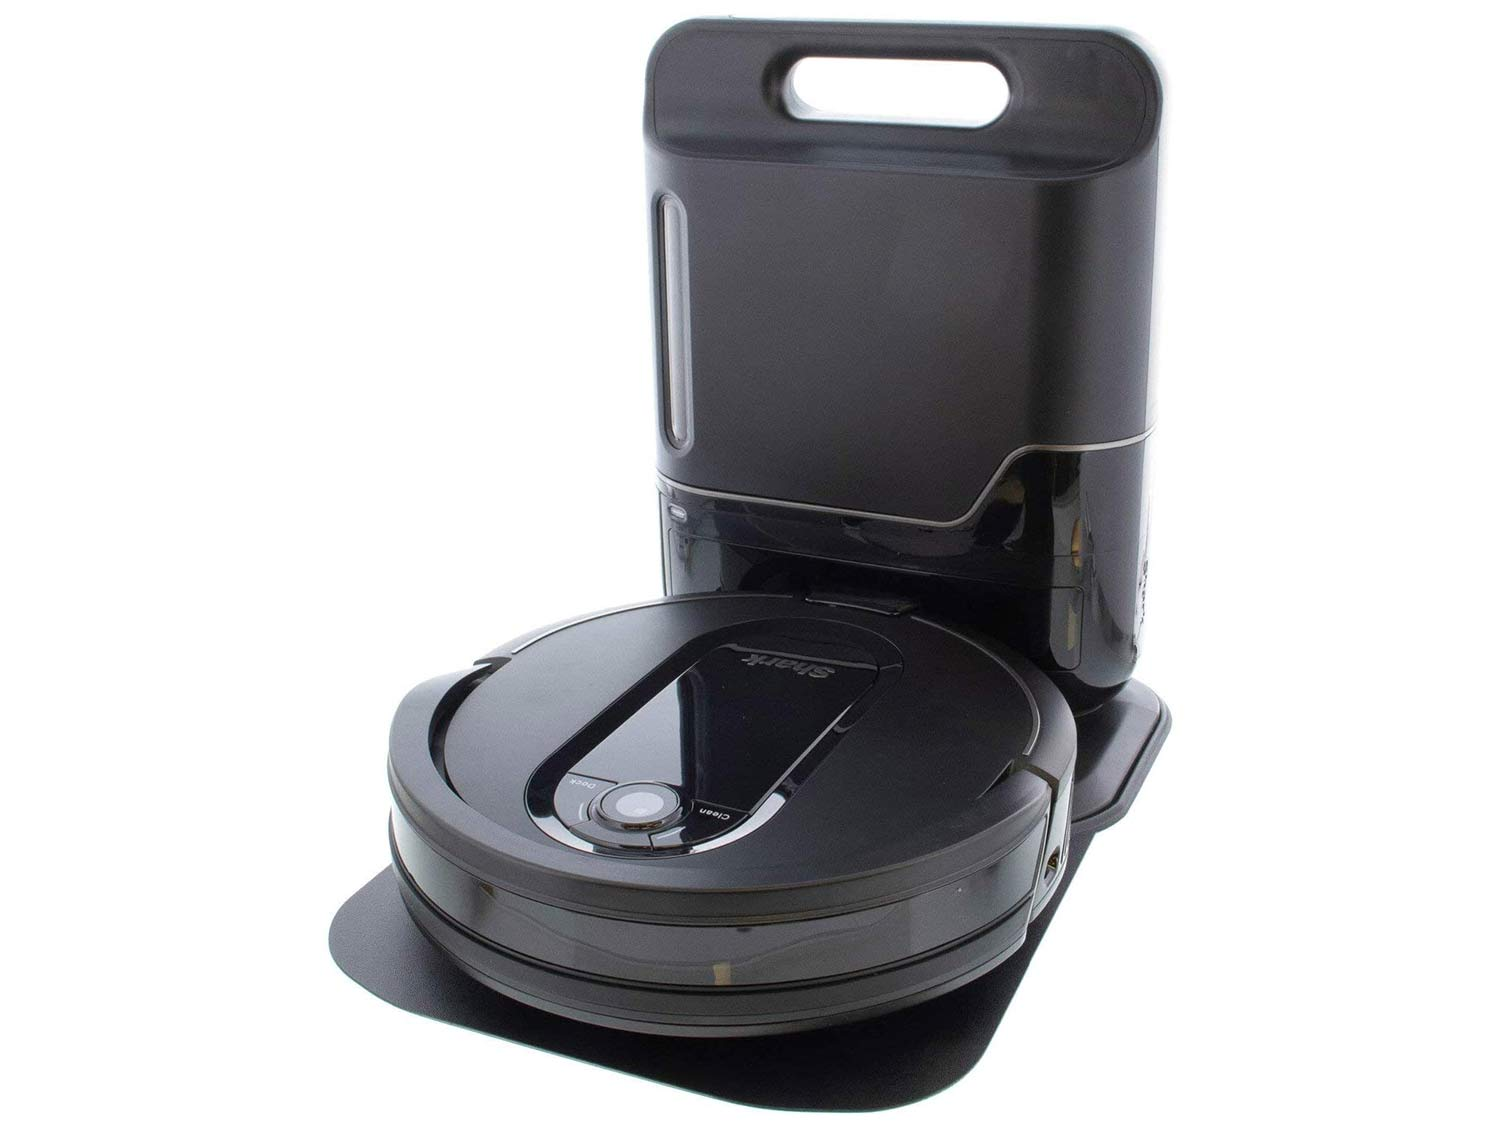 Shark Empty XL RV1001AE Robotic Vacuum, IQ Navigation, Home Mapping, Self-Cleaning Brushroll, Wi-Fi Connected, Works with Alexa